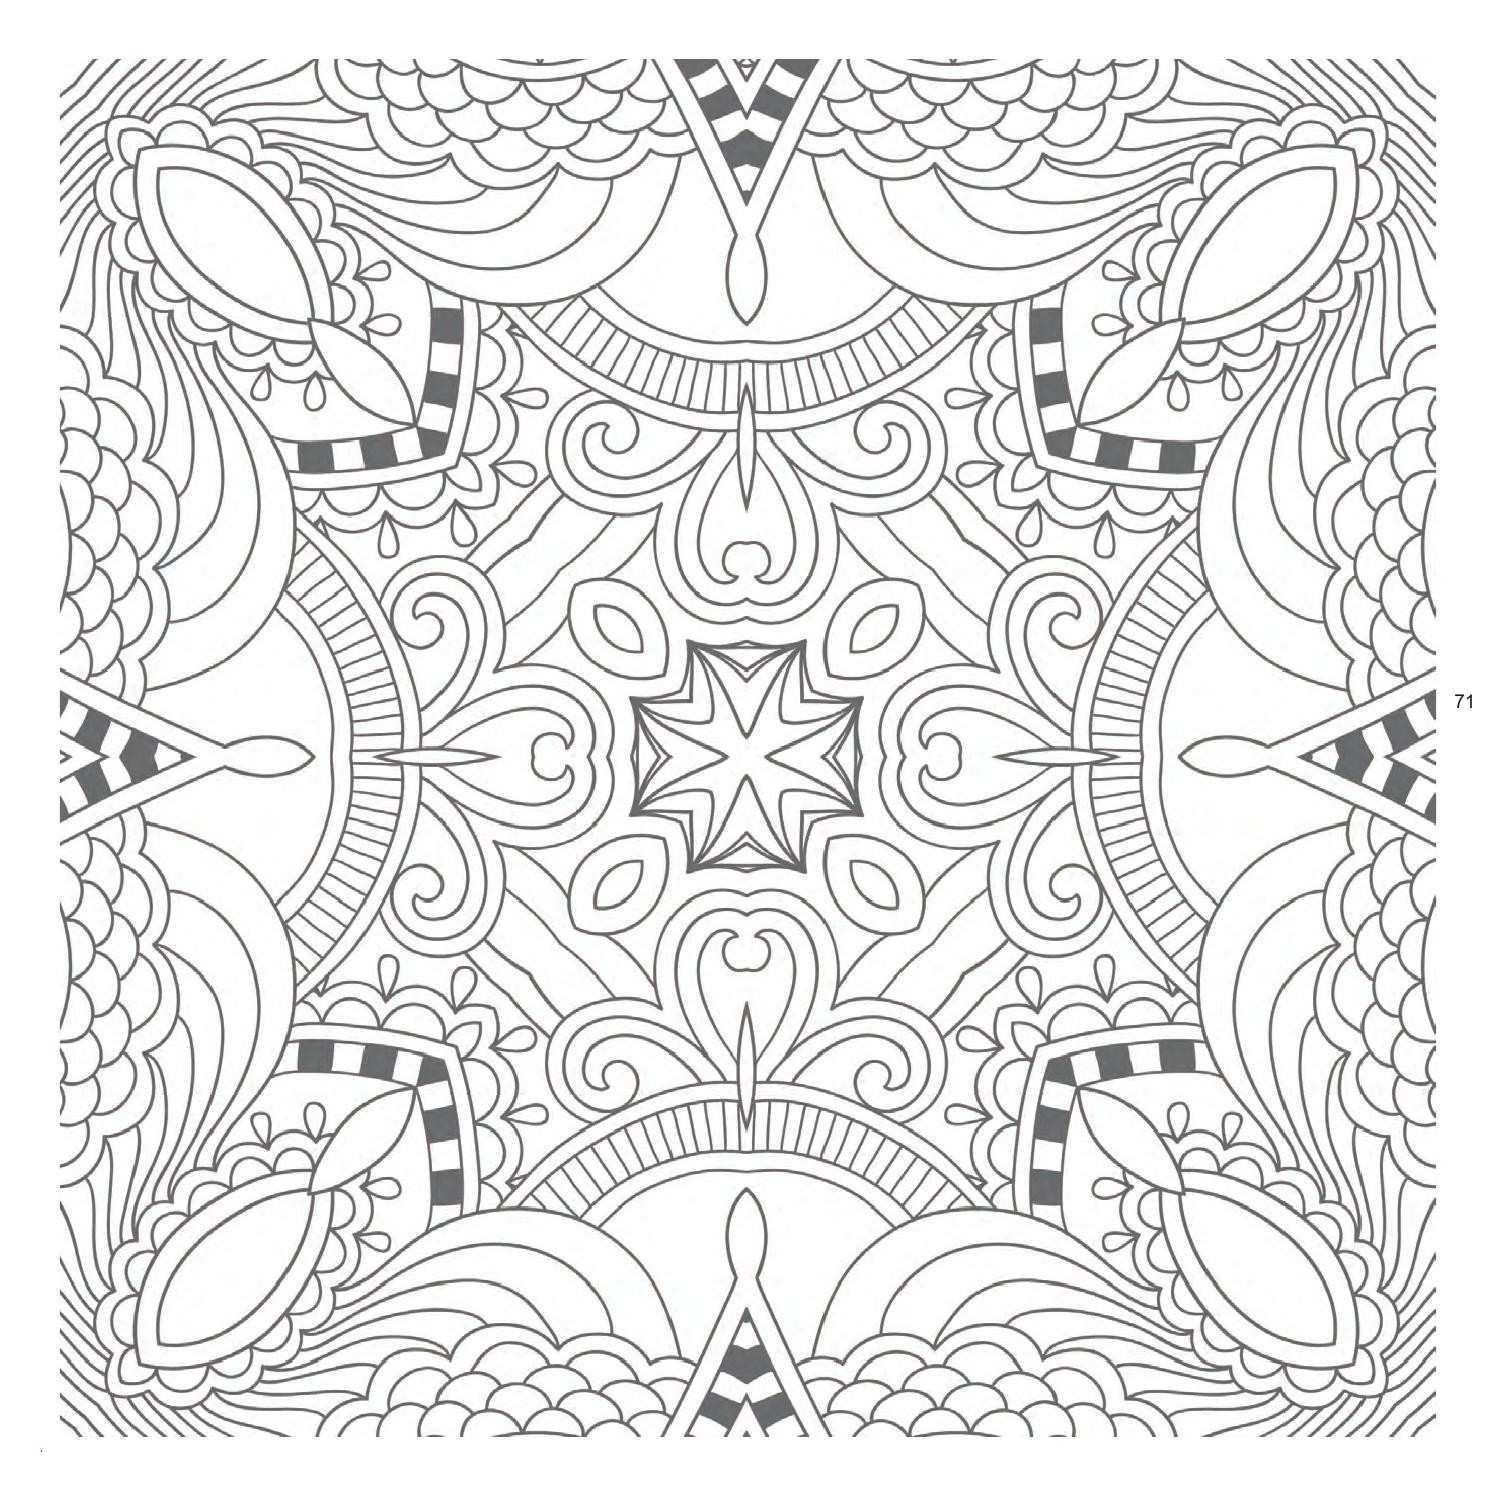 Scary Colors Inspirational Print Coloring Pages Luxury S S Media